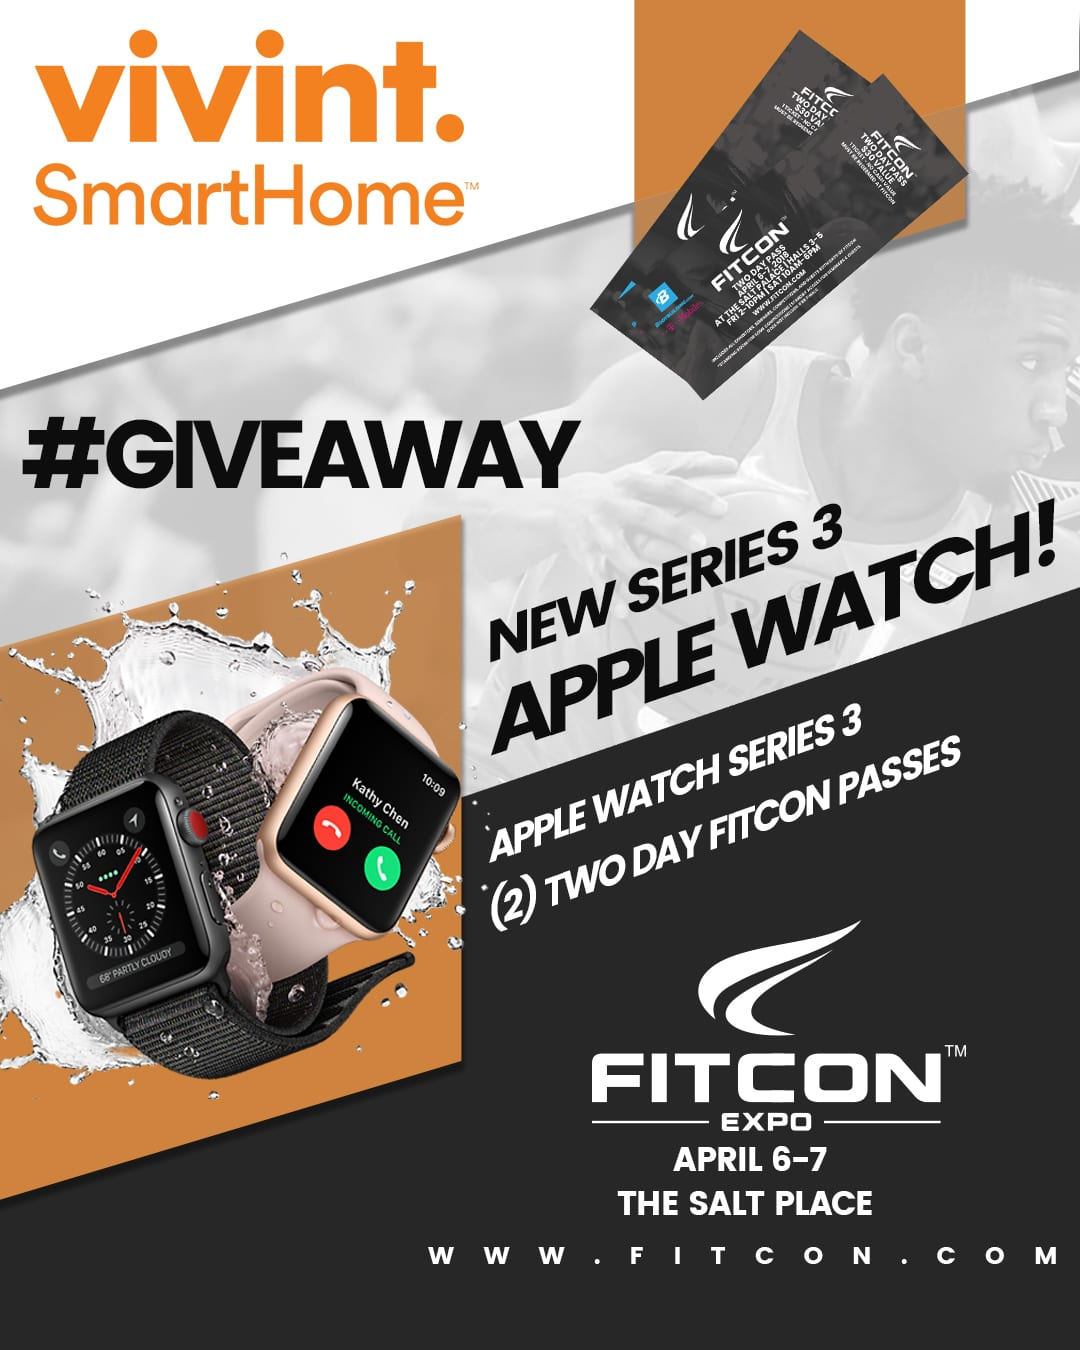 Fitcon-Vivent-Giveaway-Apple-Watch - FitCon